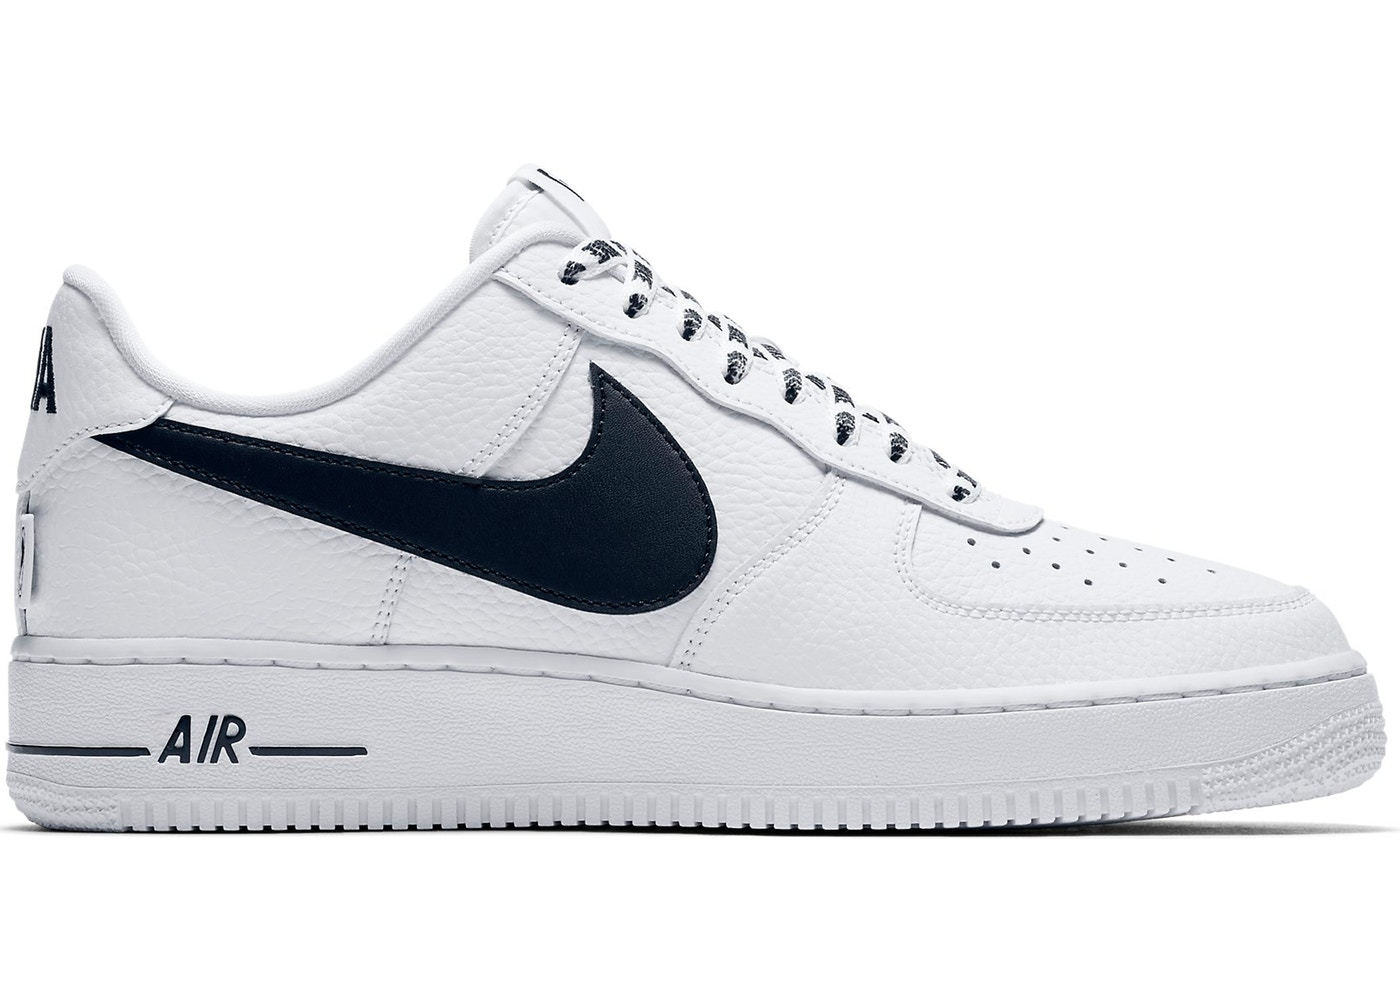 Air Force 1 Low NBA White Black